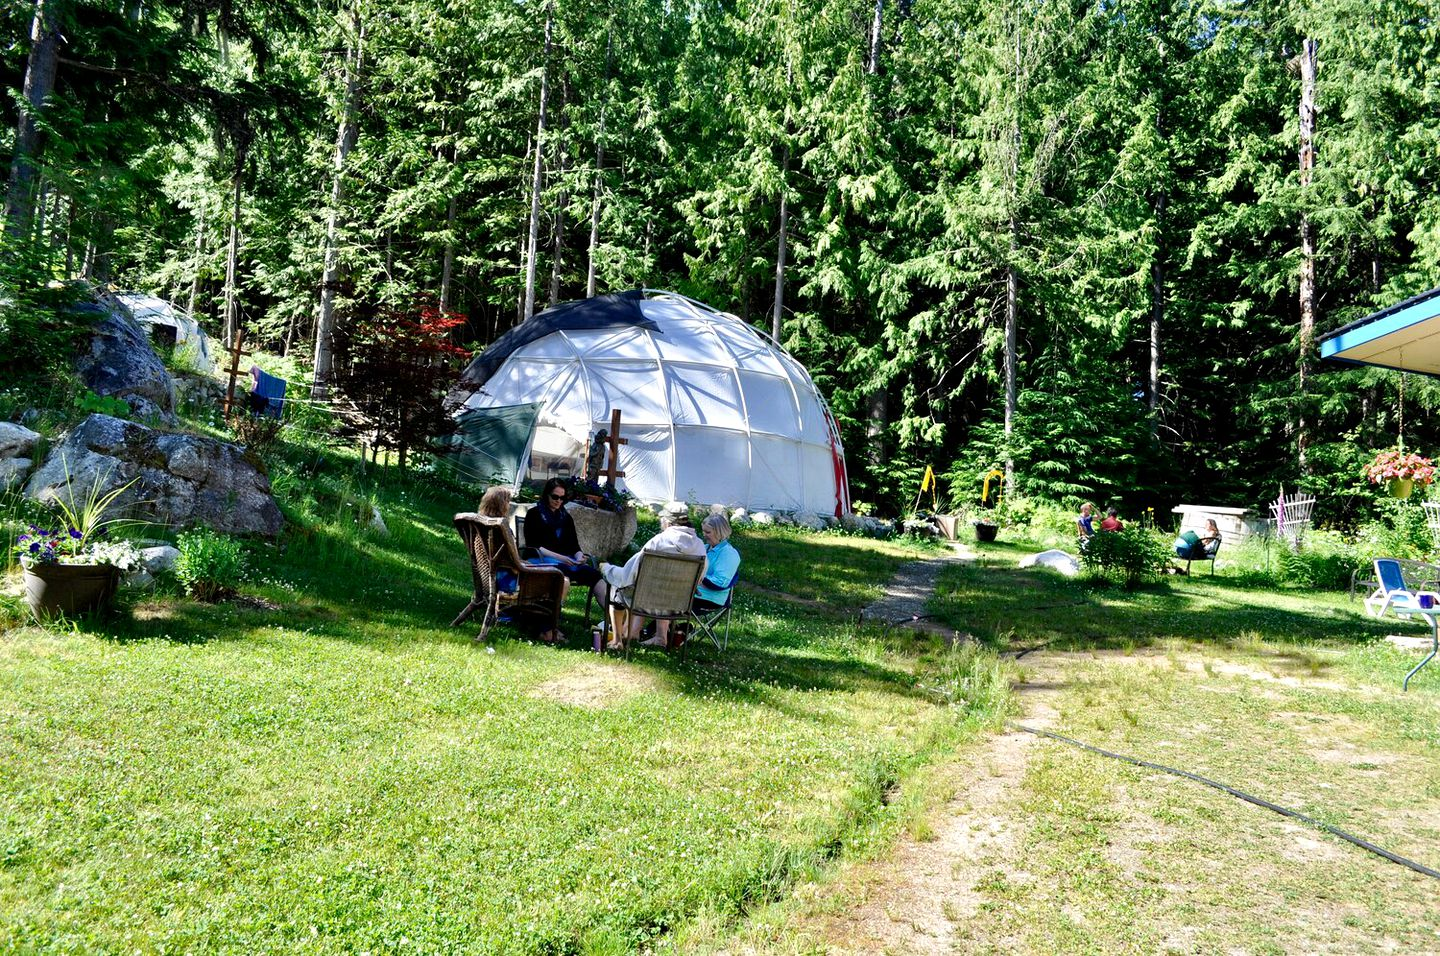 This dome rental is ideal for glamping in British Columbia